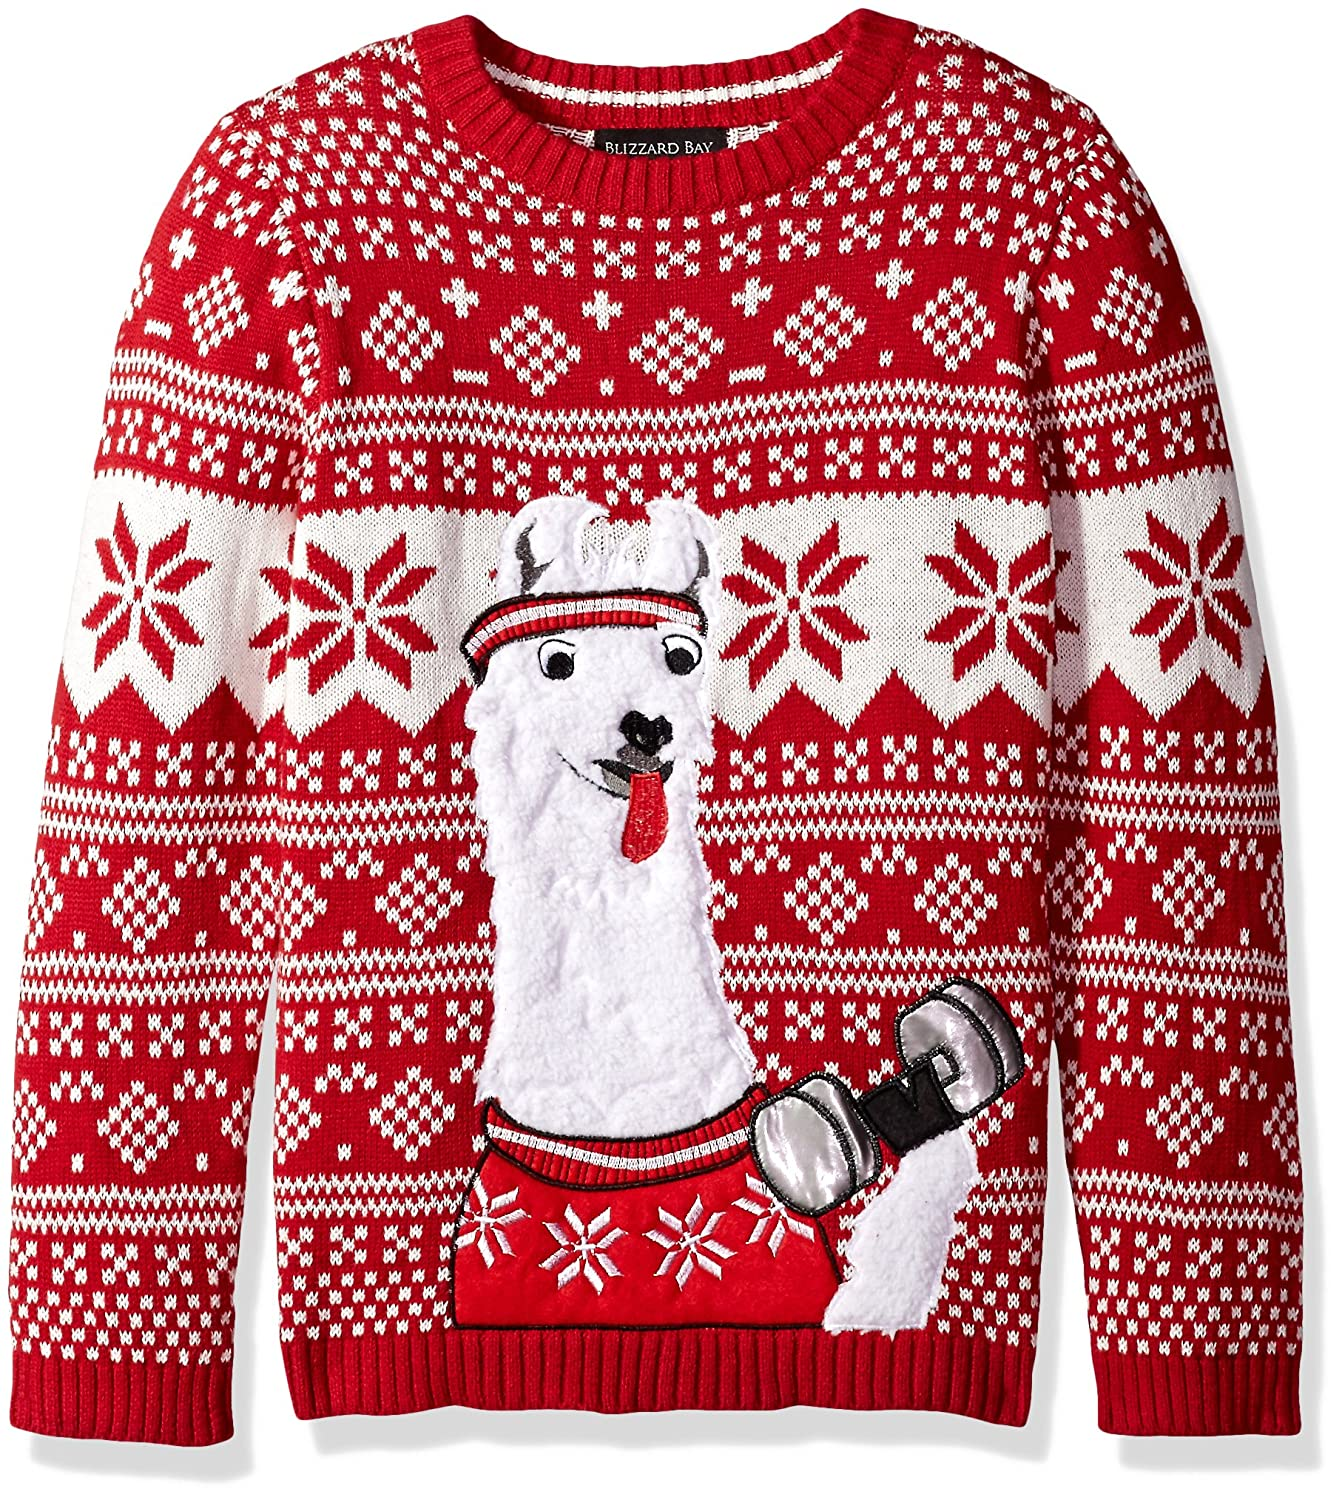 Blizzard Bay Boys' Llama Fitness Xmas Sweater Blizzard Bay Boys 8-20 B65077X